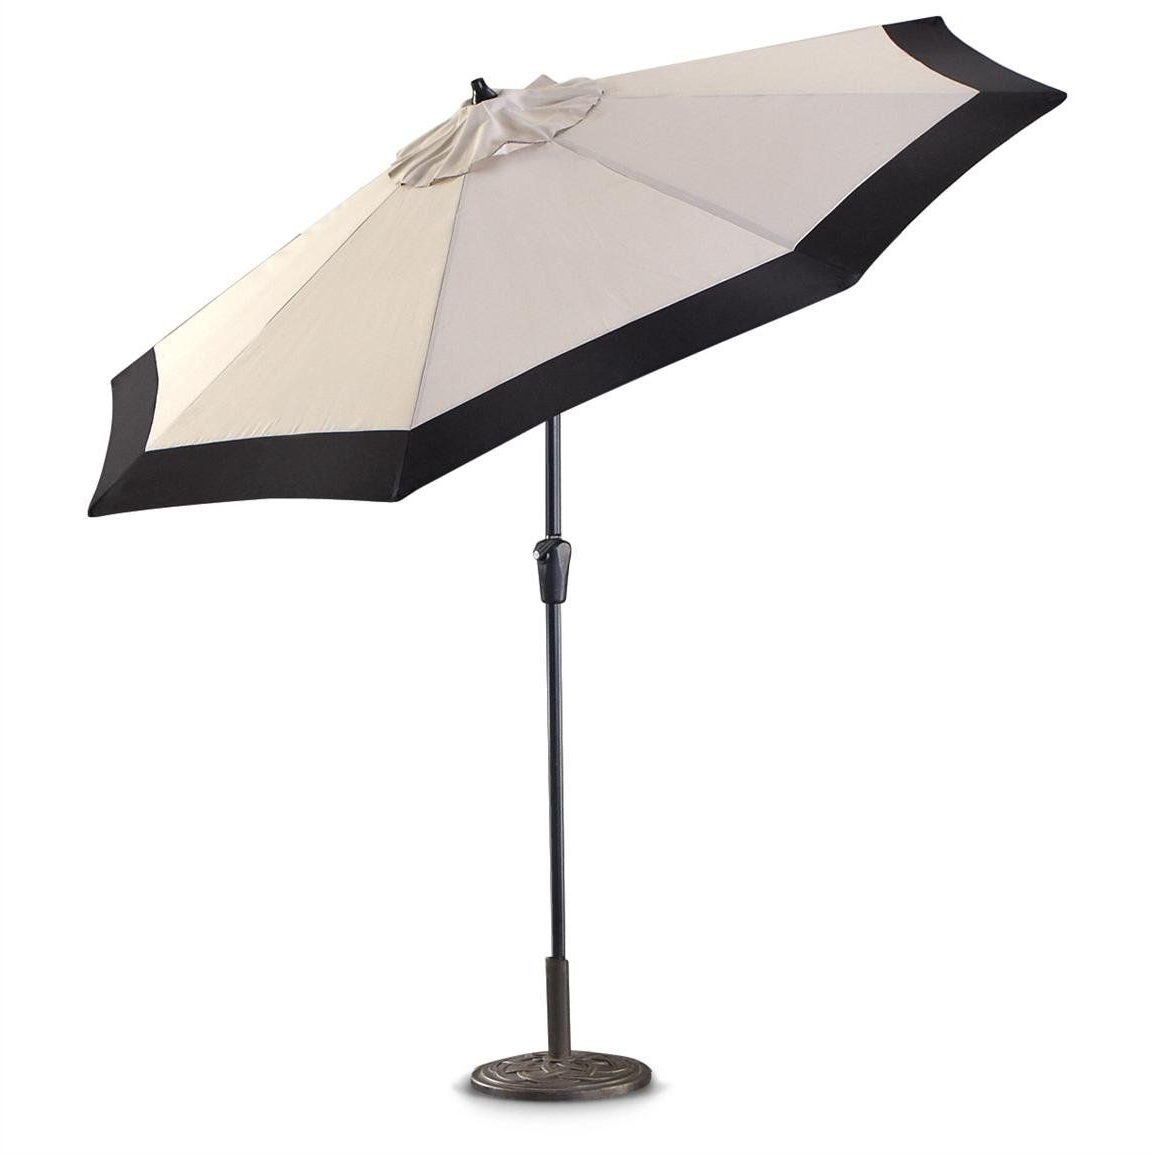 Most Popular White Patio Umbrellas Pertaining To White Patio Umbrellas #5: Castlecreek 9 Two Tone Deluxe Market Patio (View 8 of 20)